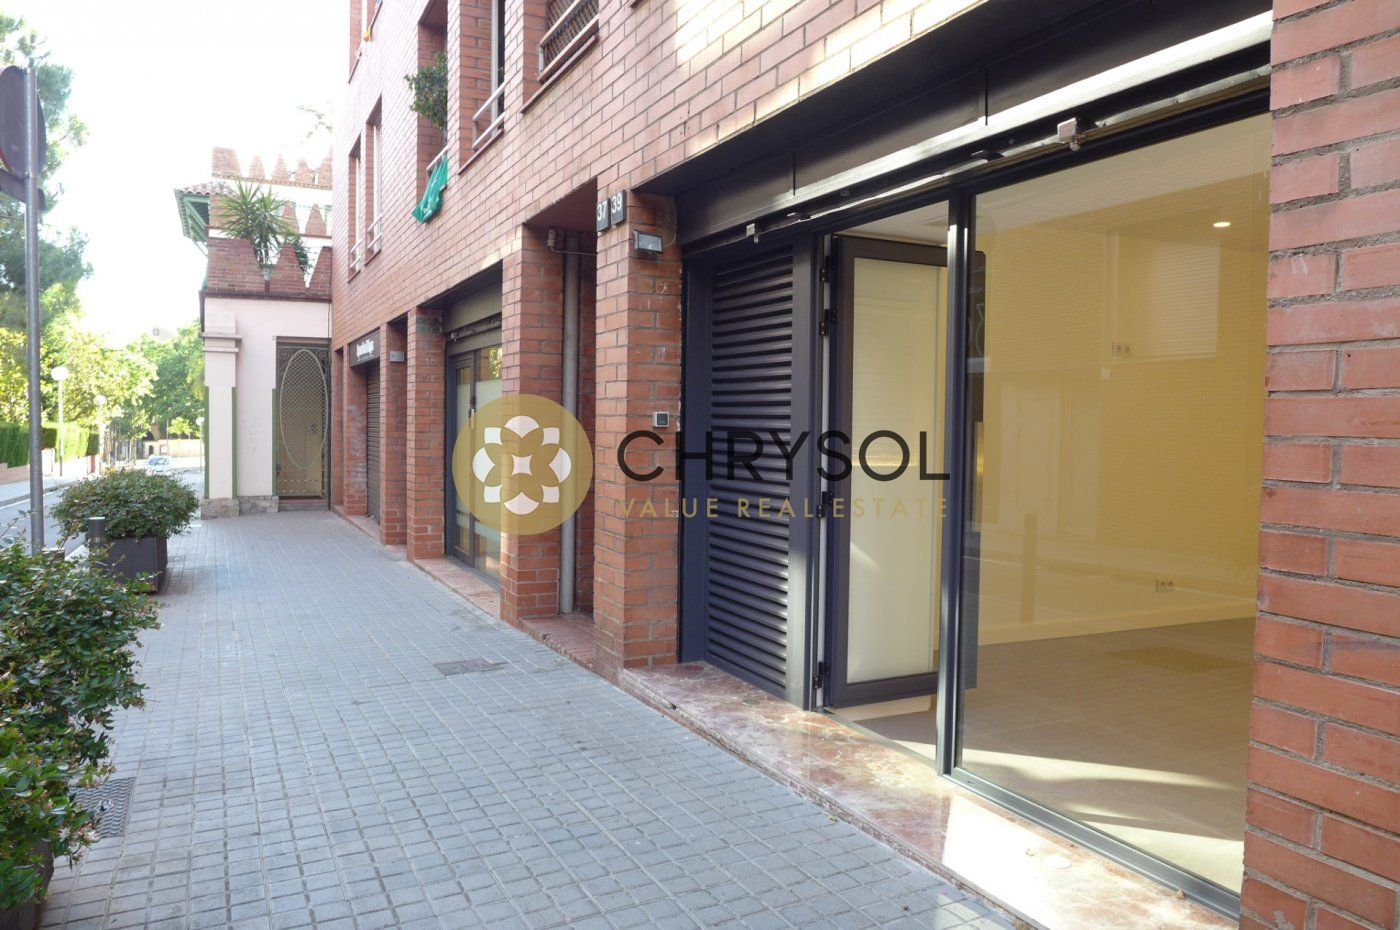 Fotogalería - 4 - Chrysol Value